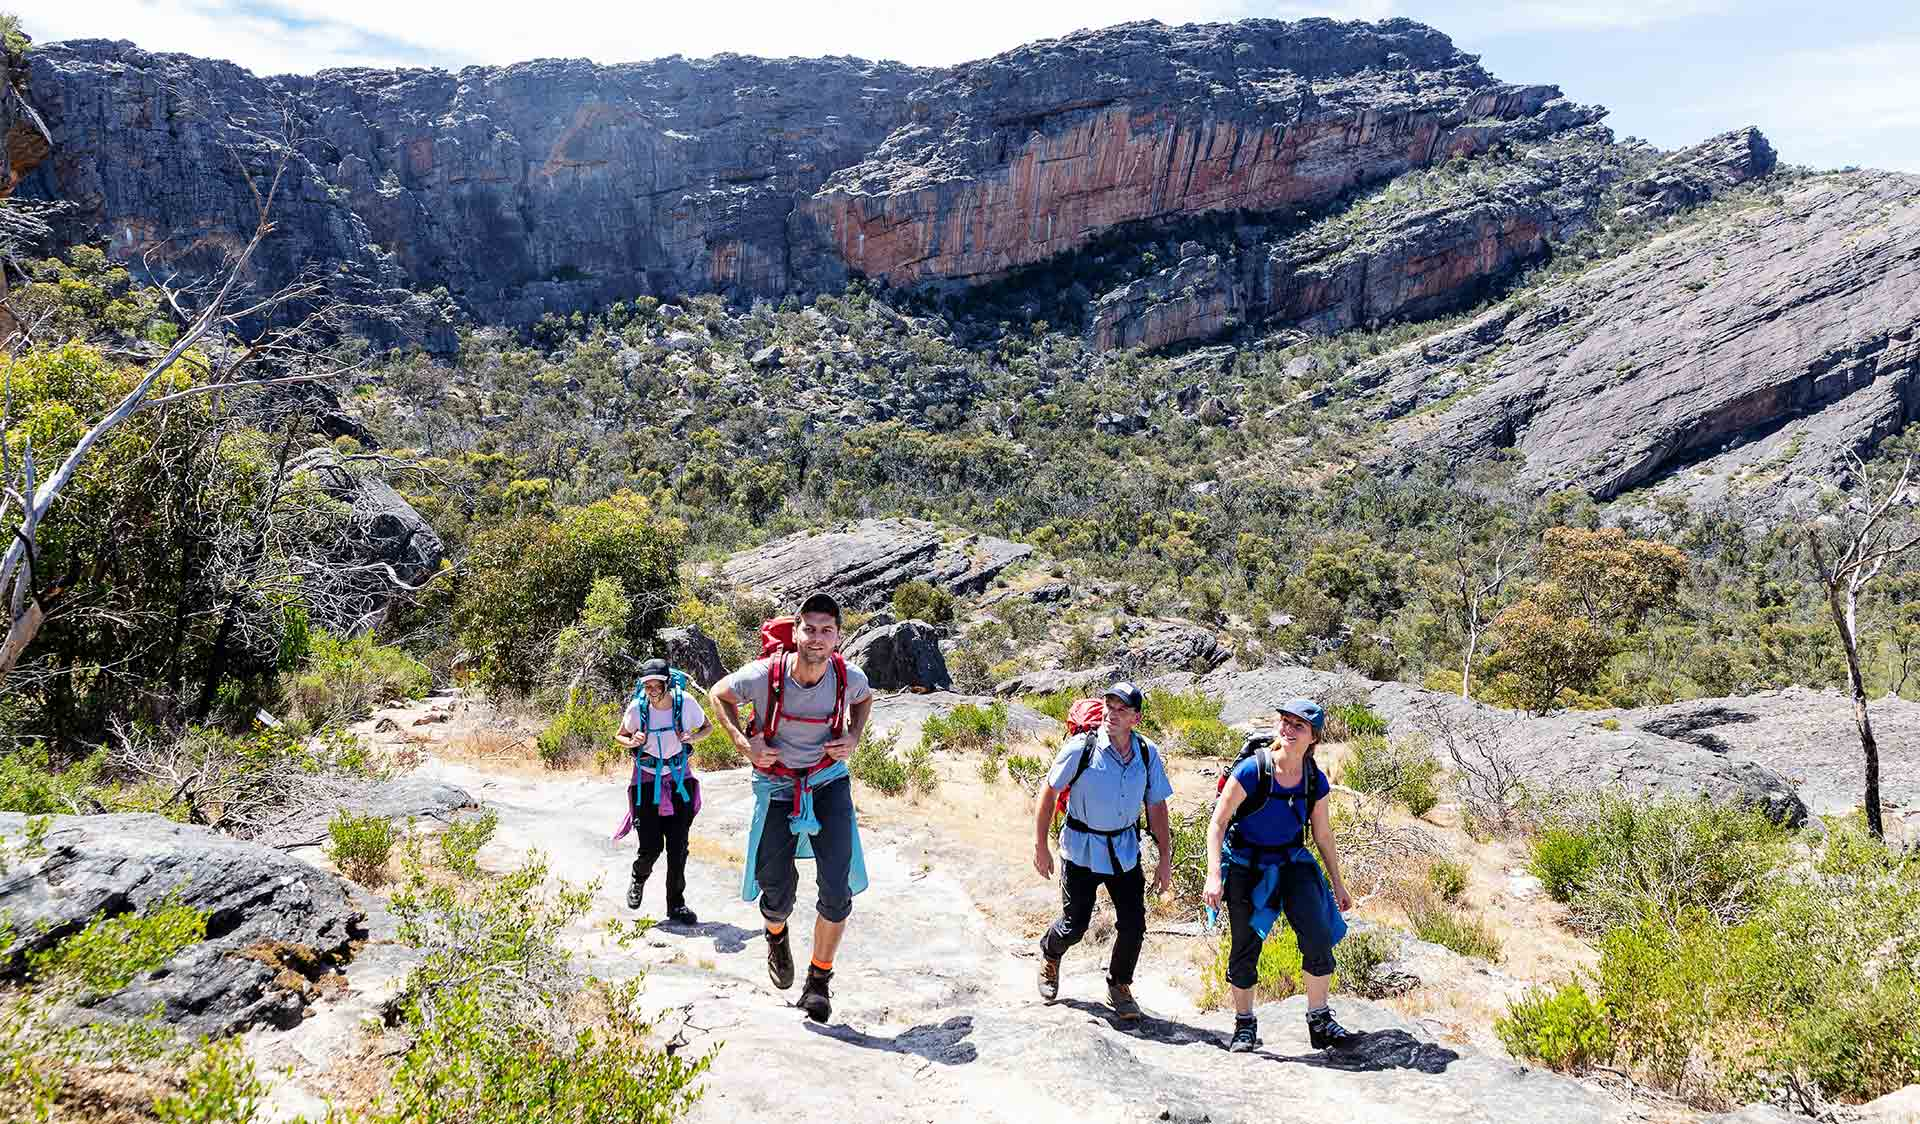 Four friends looking up at the surrounding scenery during their hike at Mount Stapylton